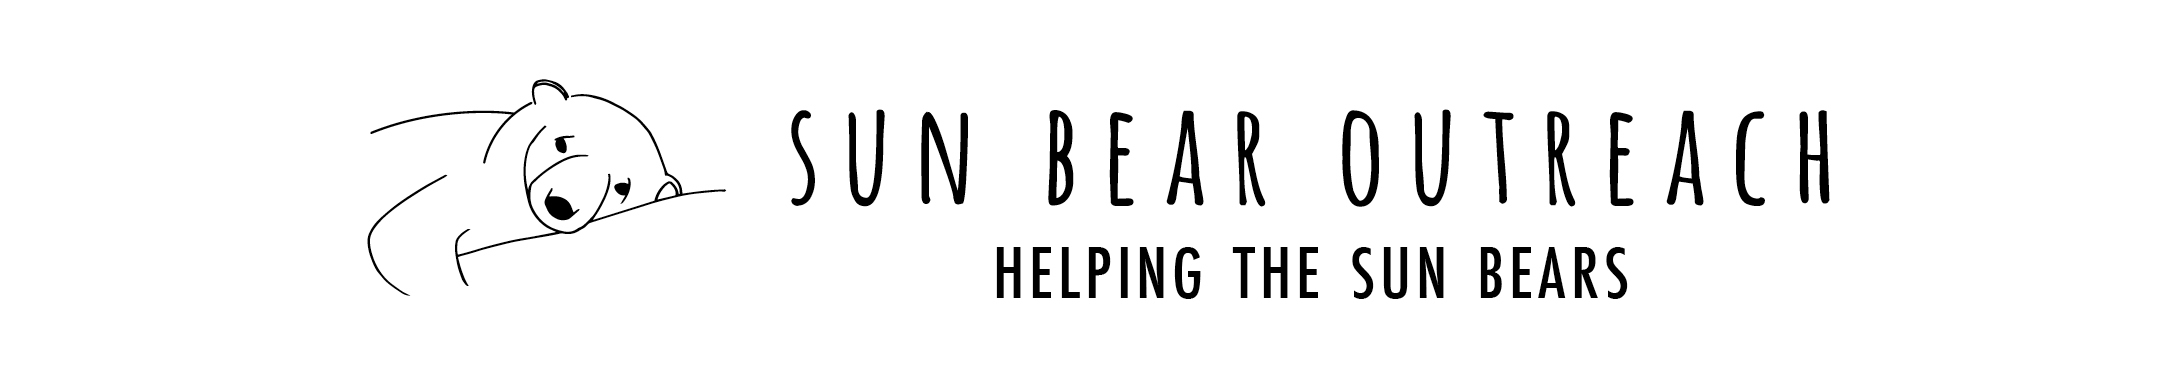 Sun Bear Outreach